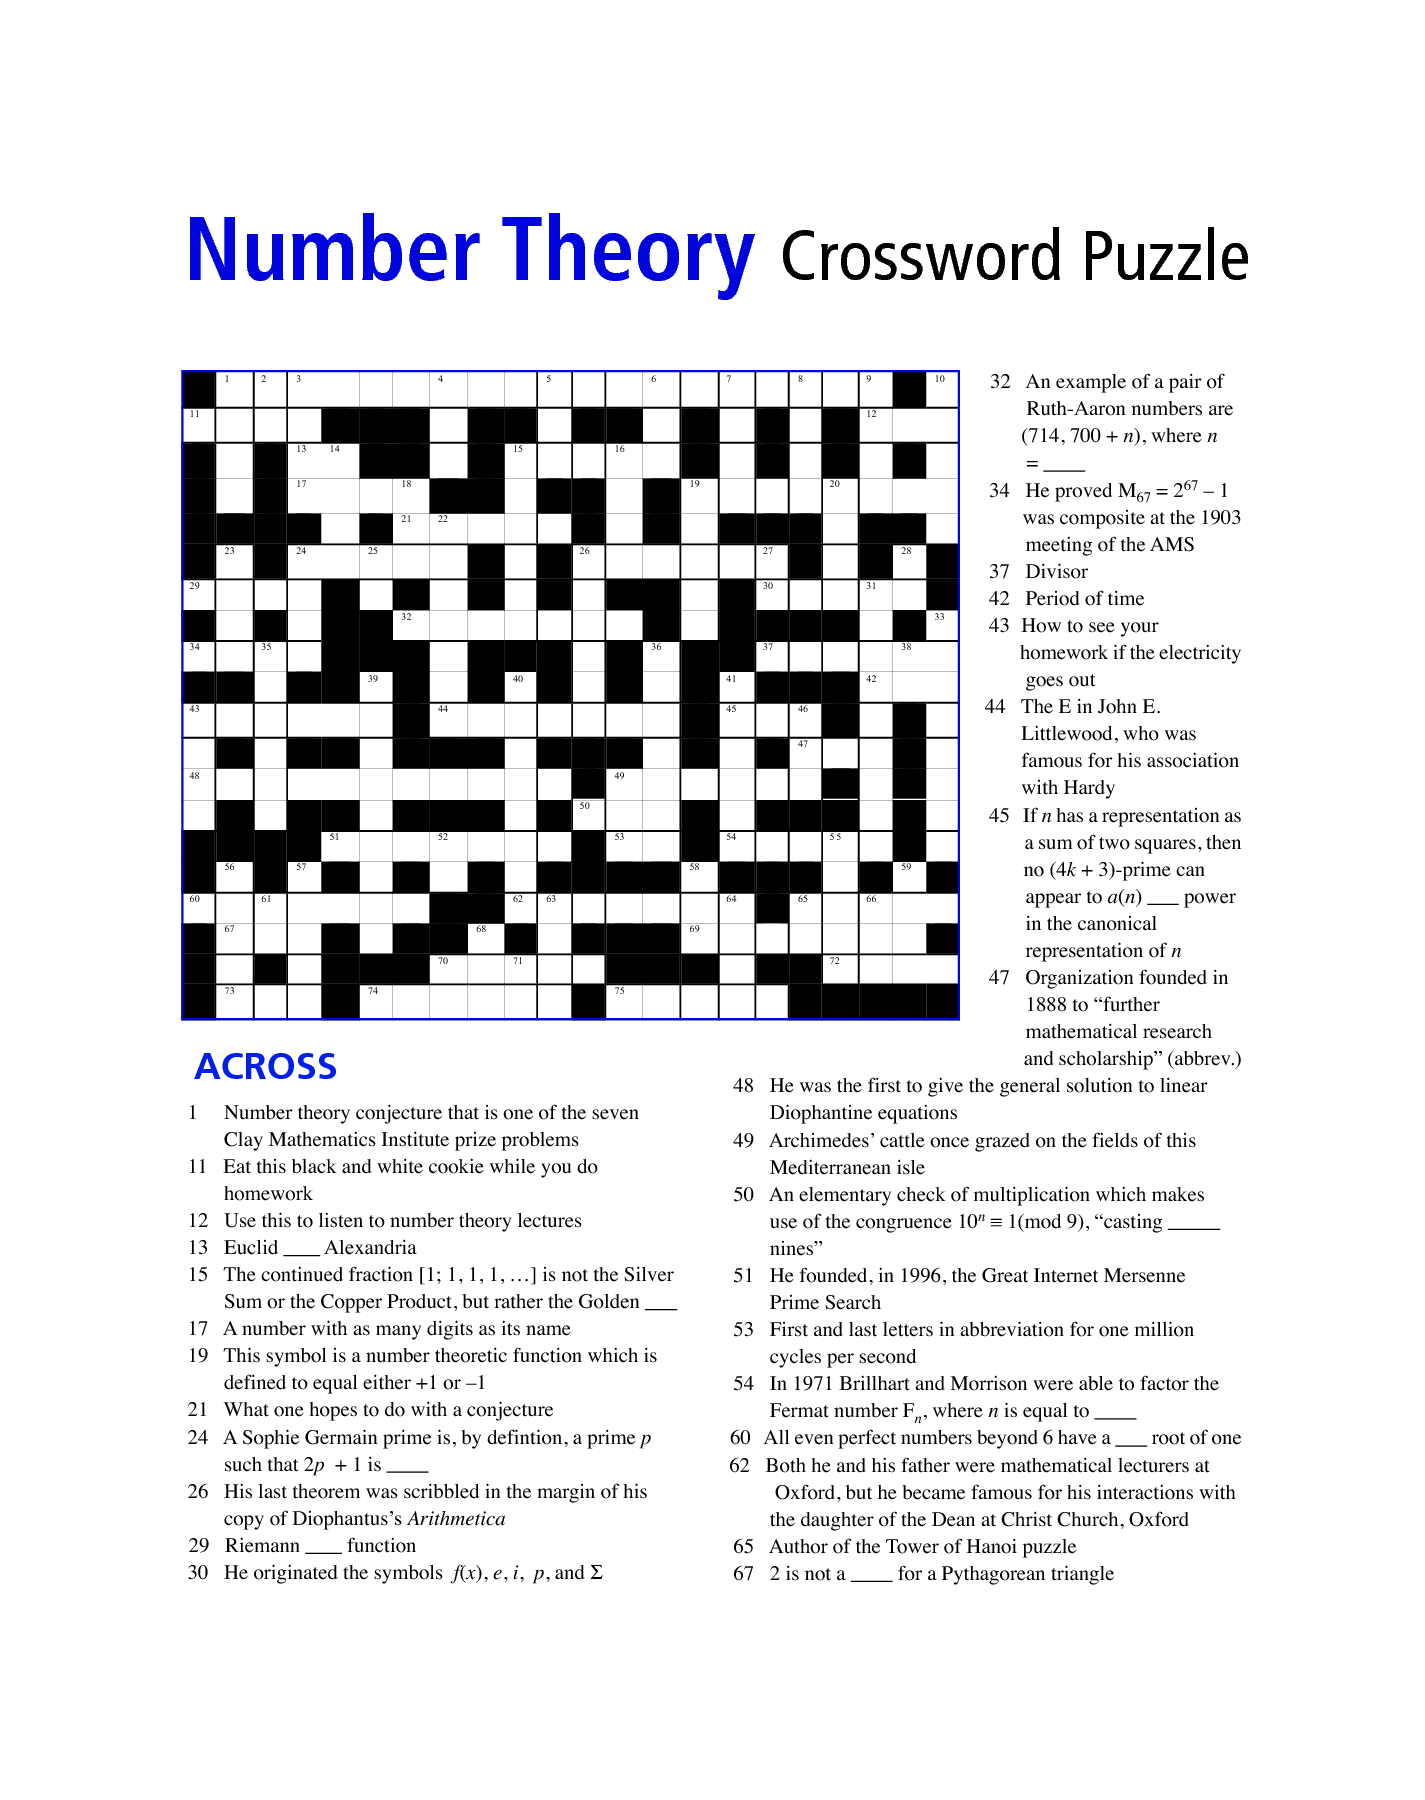 Maths Crossword Puzzles For Class 8 With Answers aprita – Math Crossword Puzzle Worksheets